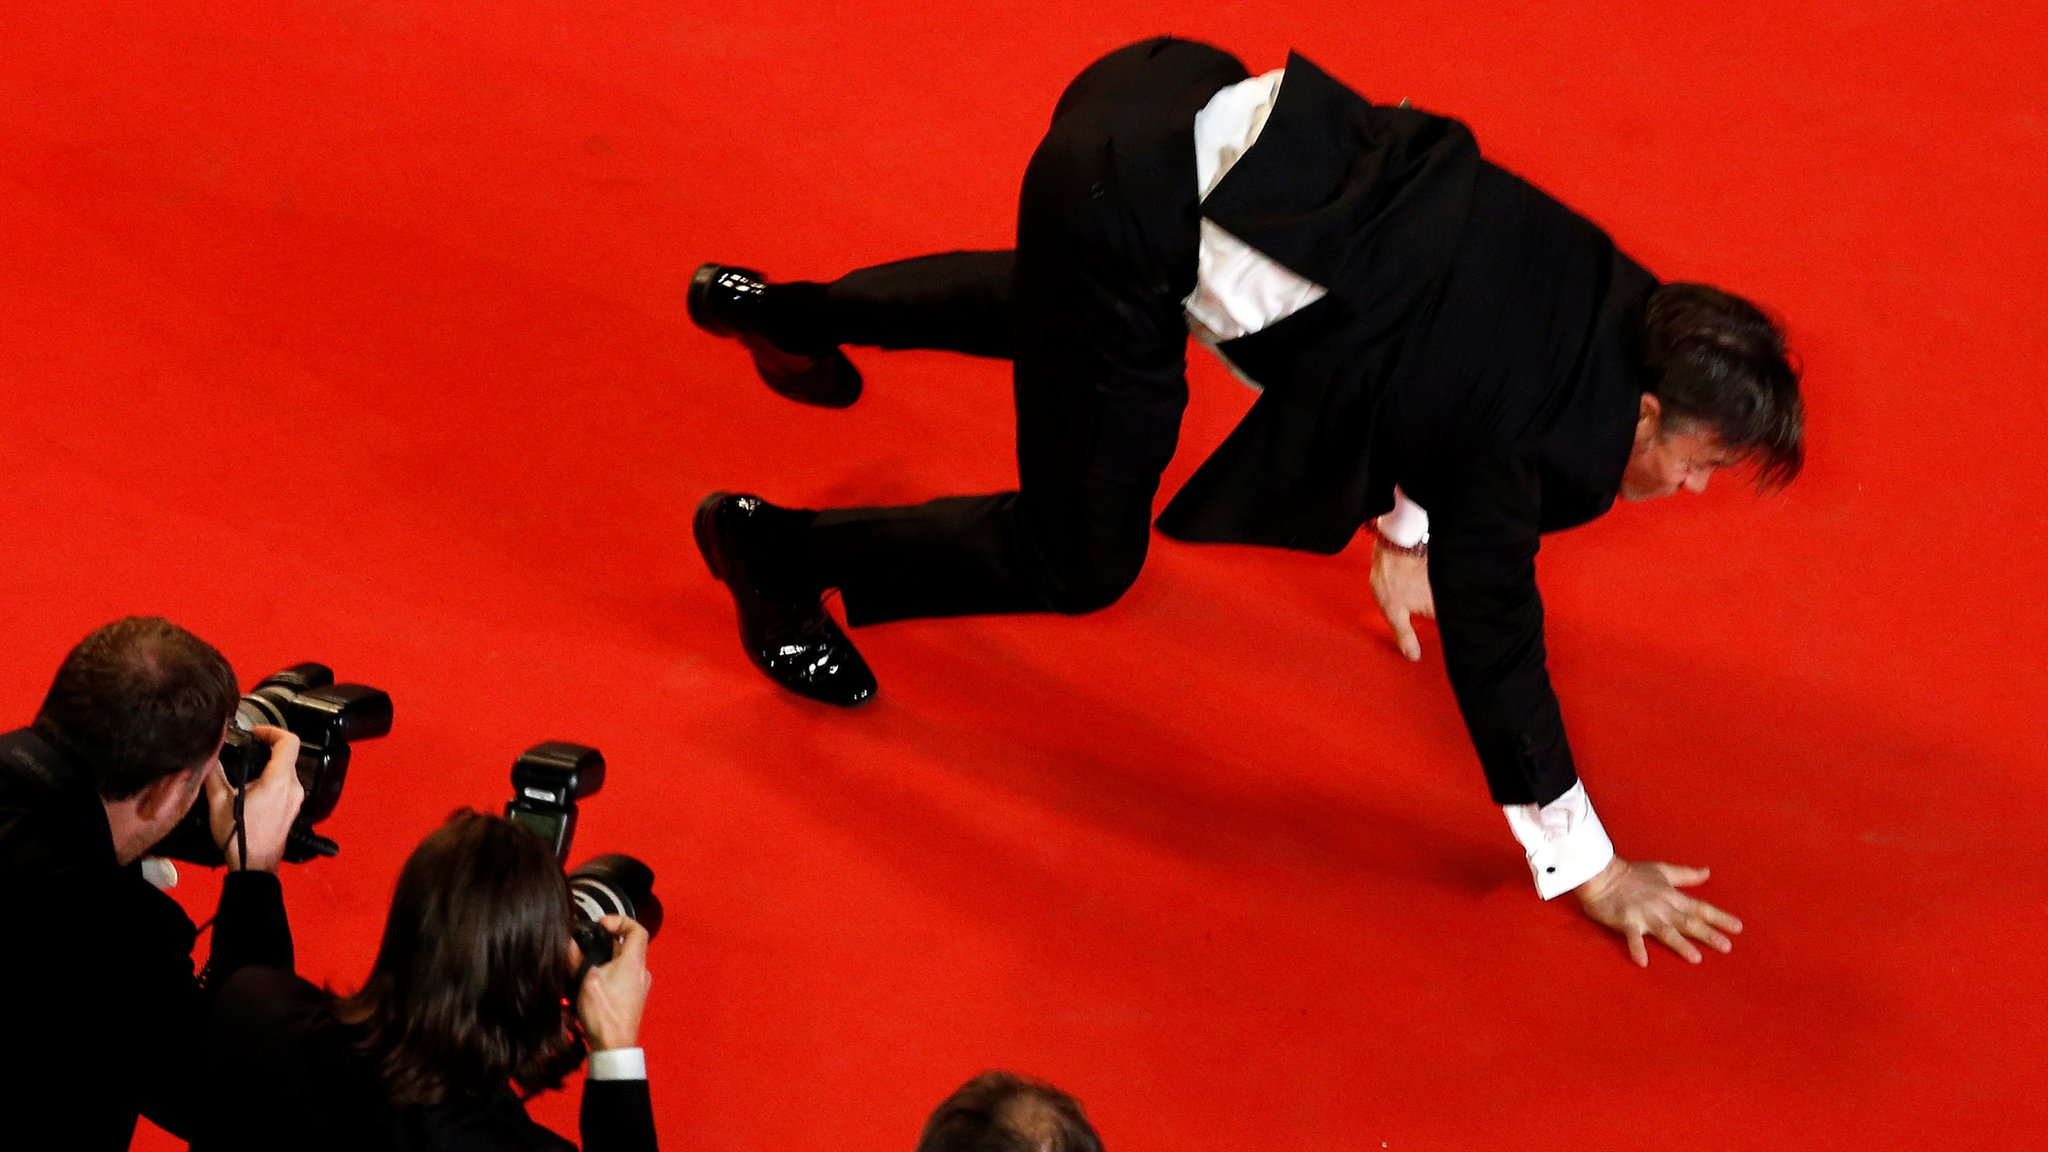 Cannes Film Festival highlights: Laughter, tears and monkey business